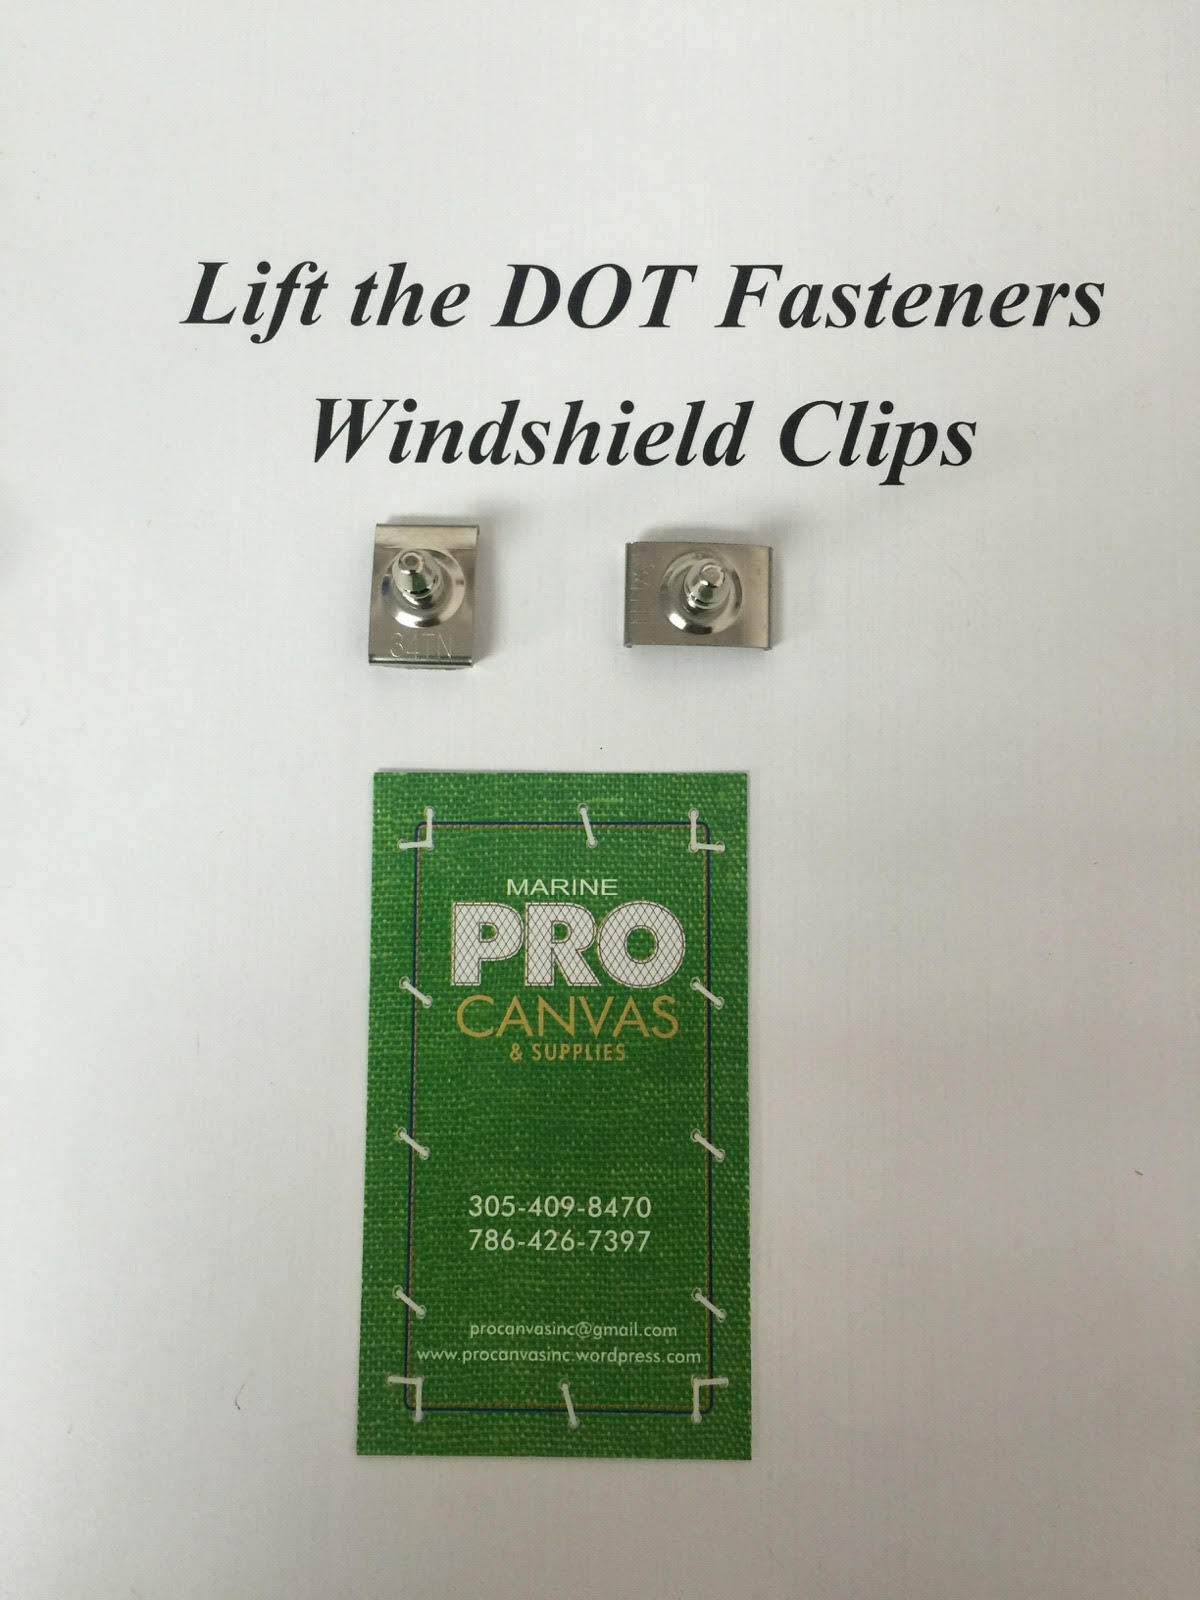 "Lift-the-Dot Fasteners Stainless Steel Windshield Clips 3/4"" 150 pieces"